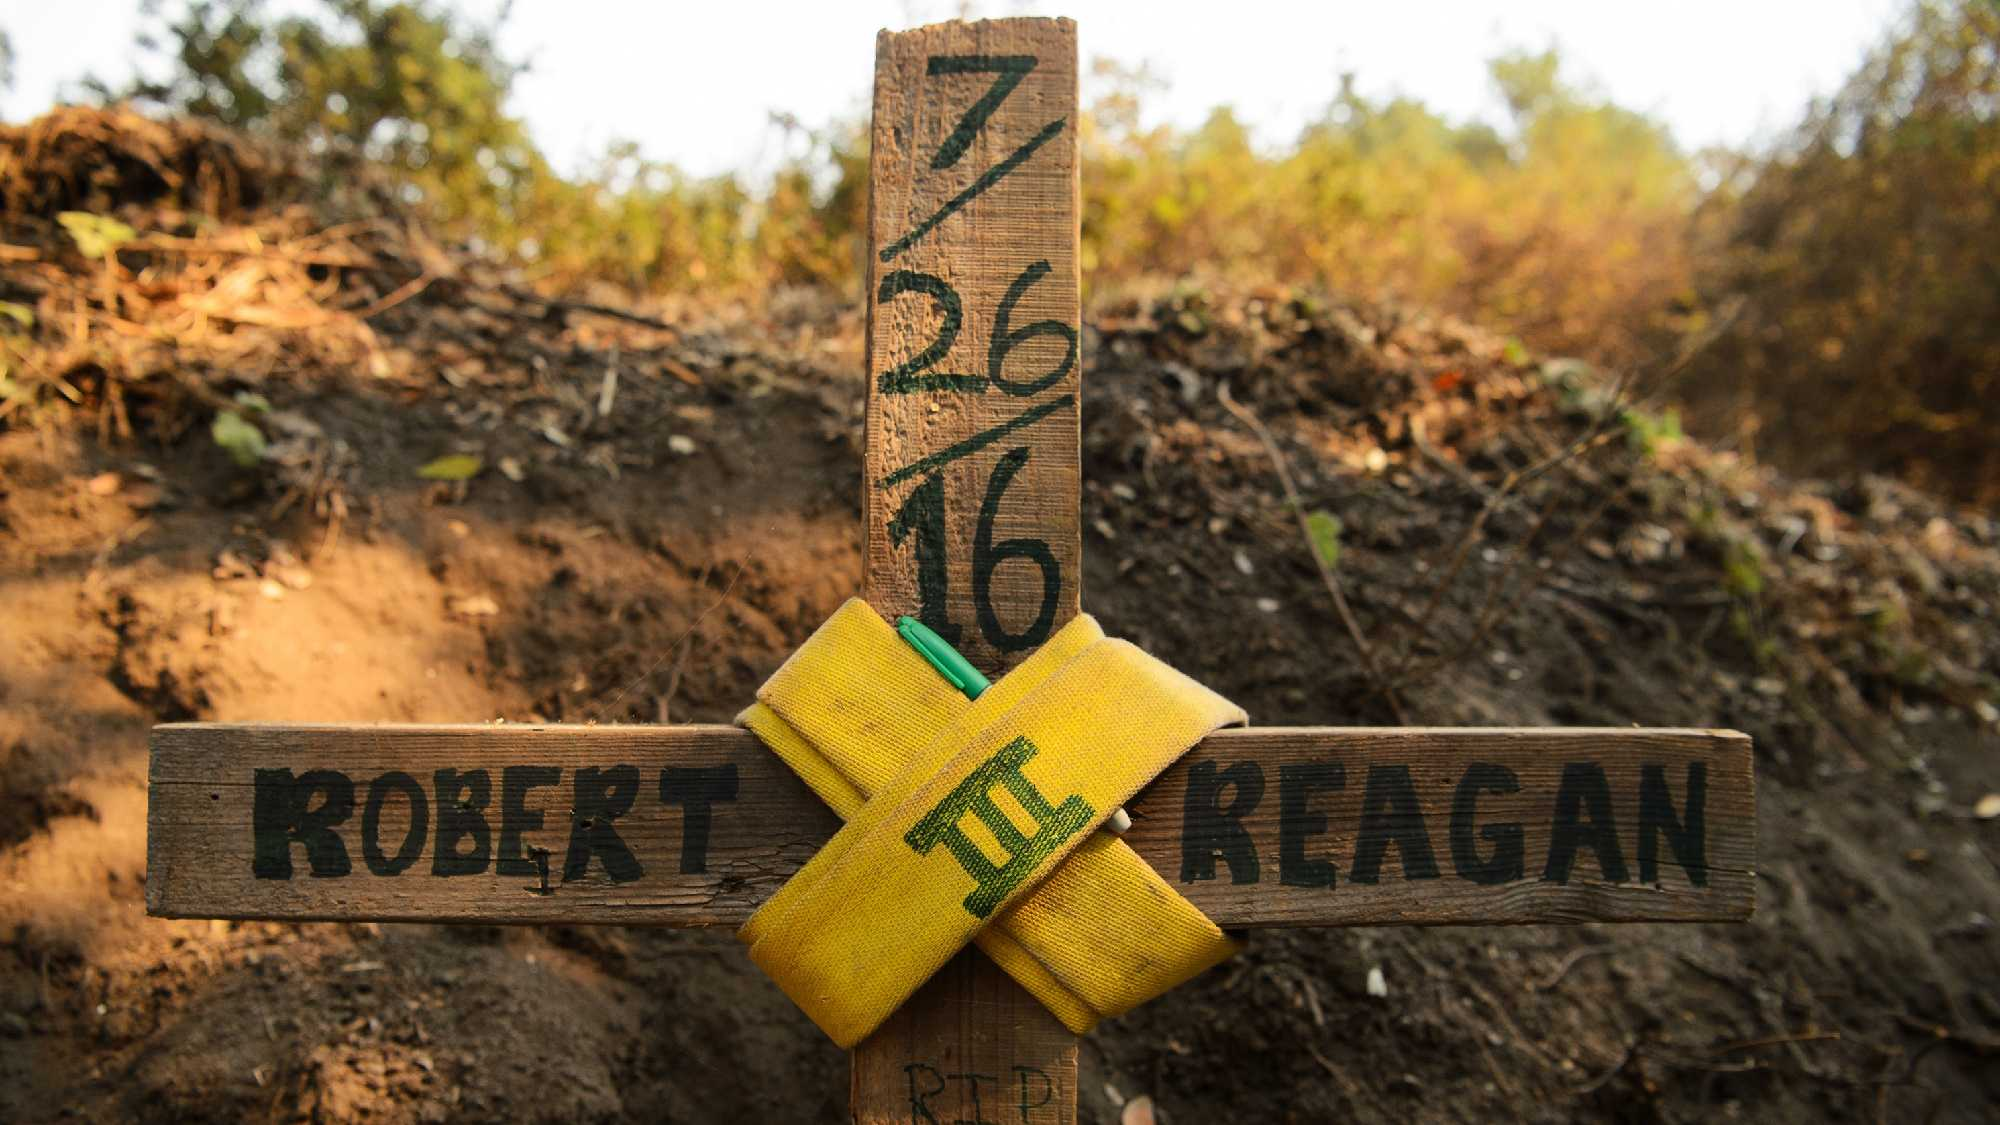 A bulldozer operator, Robert Oliver Reagan III, was killed on July 26 while fighting the Soberanes Fire. Cal Fire said the bulldozer rolled on steep terrain at night.